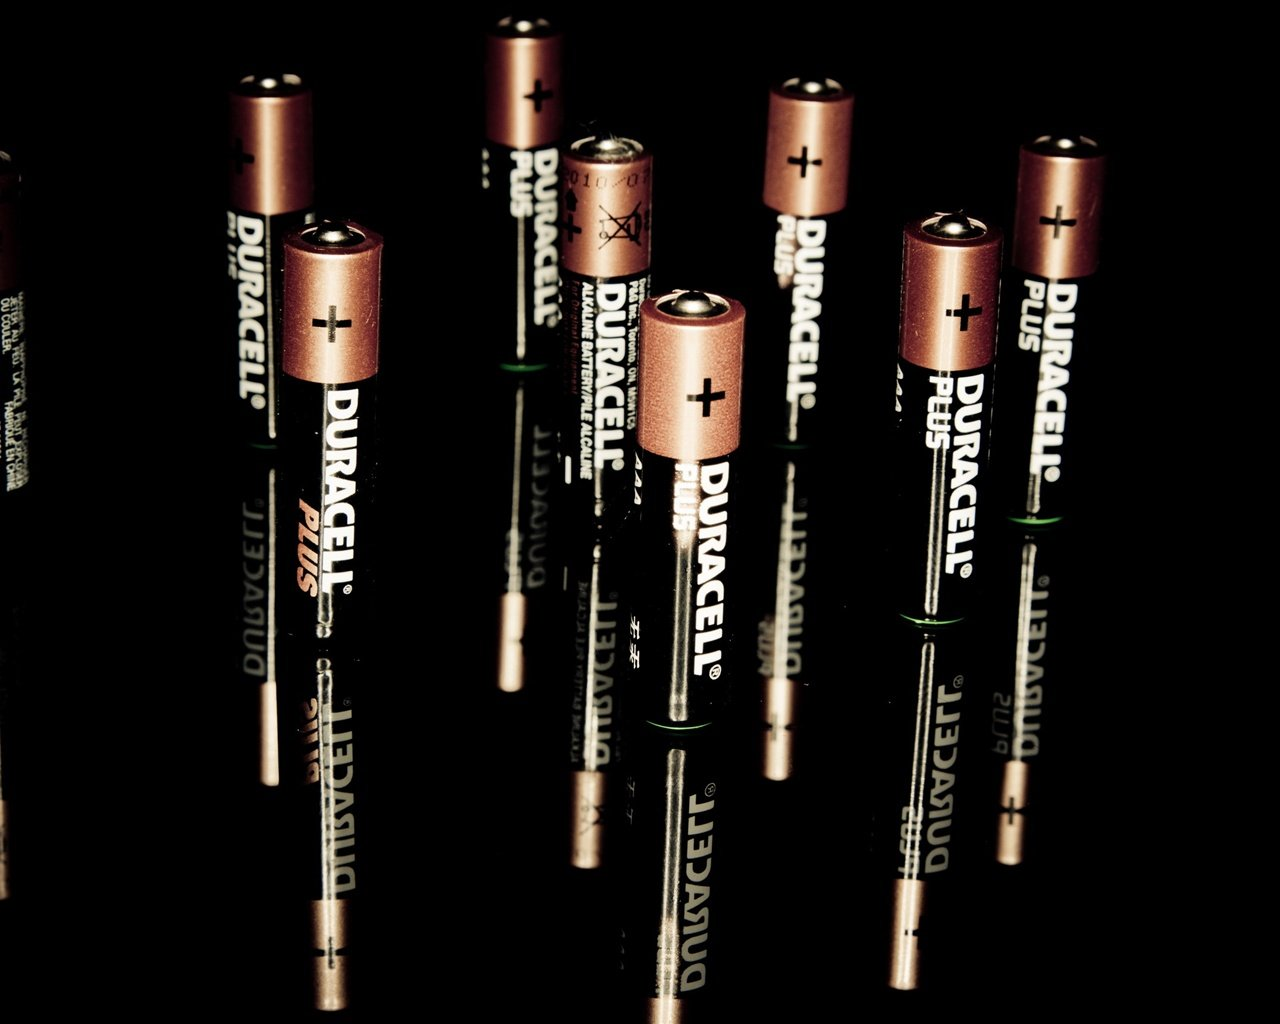 Wallpaper Duracell battery 2560x1600 HD Picture Image 1280x1024